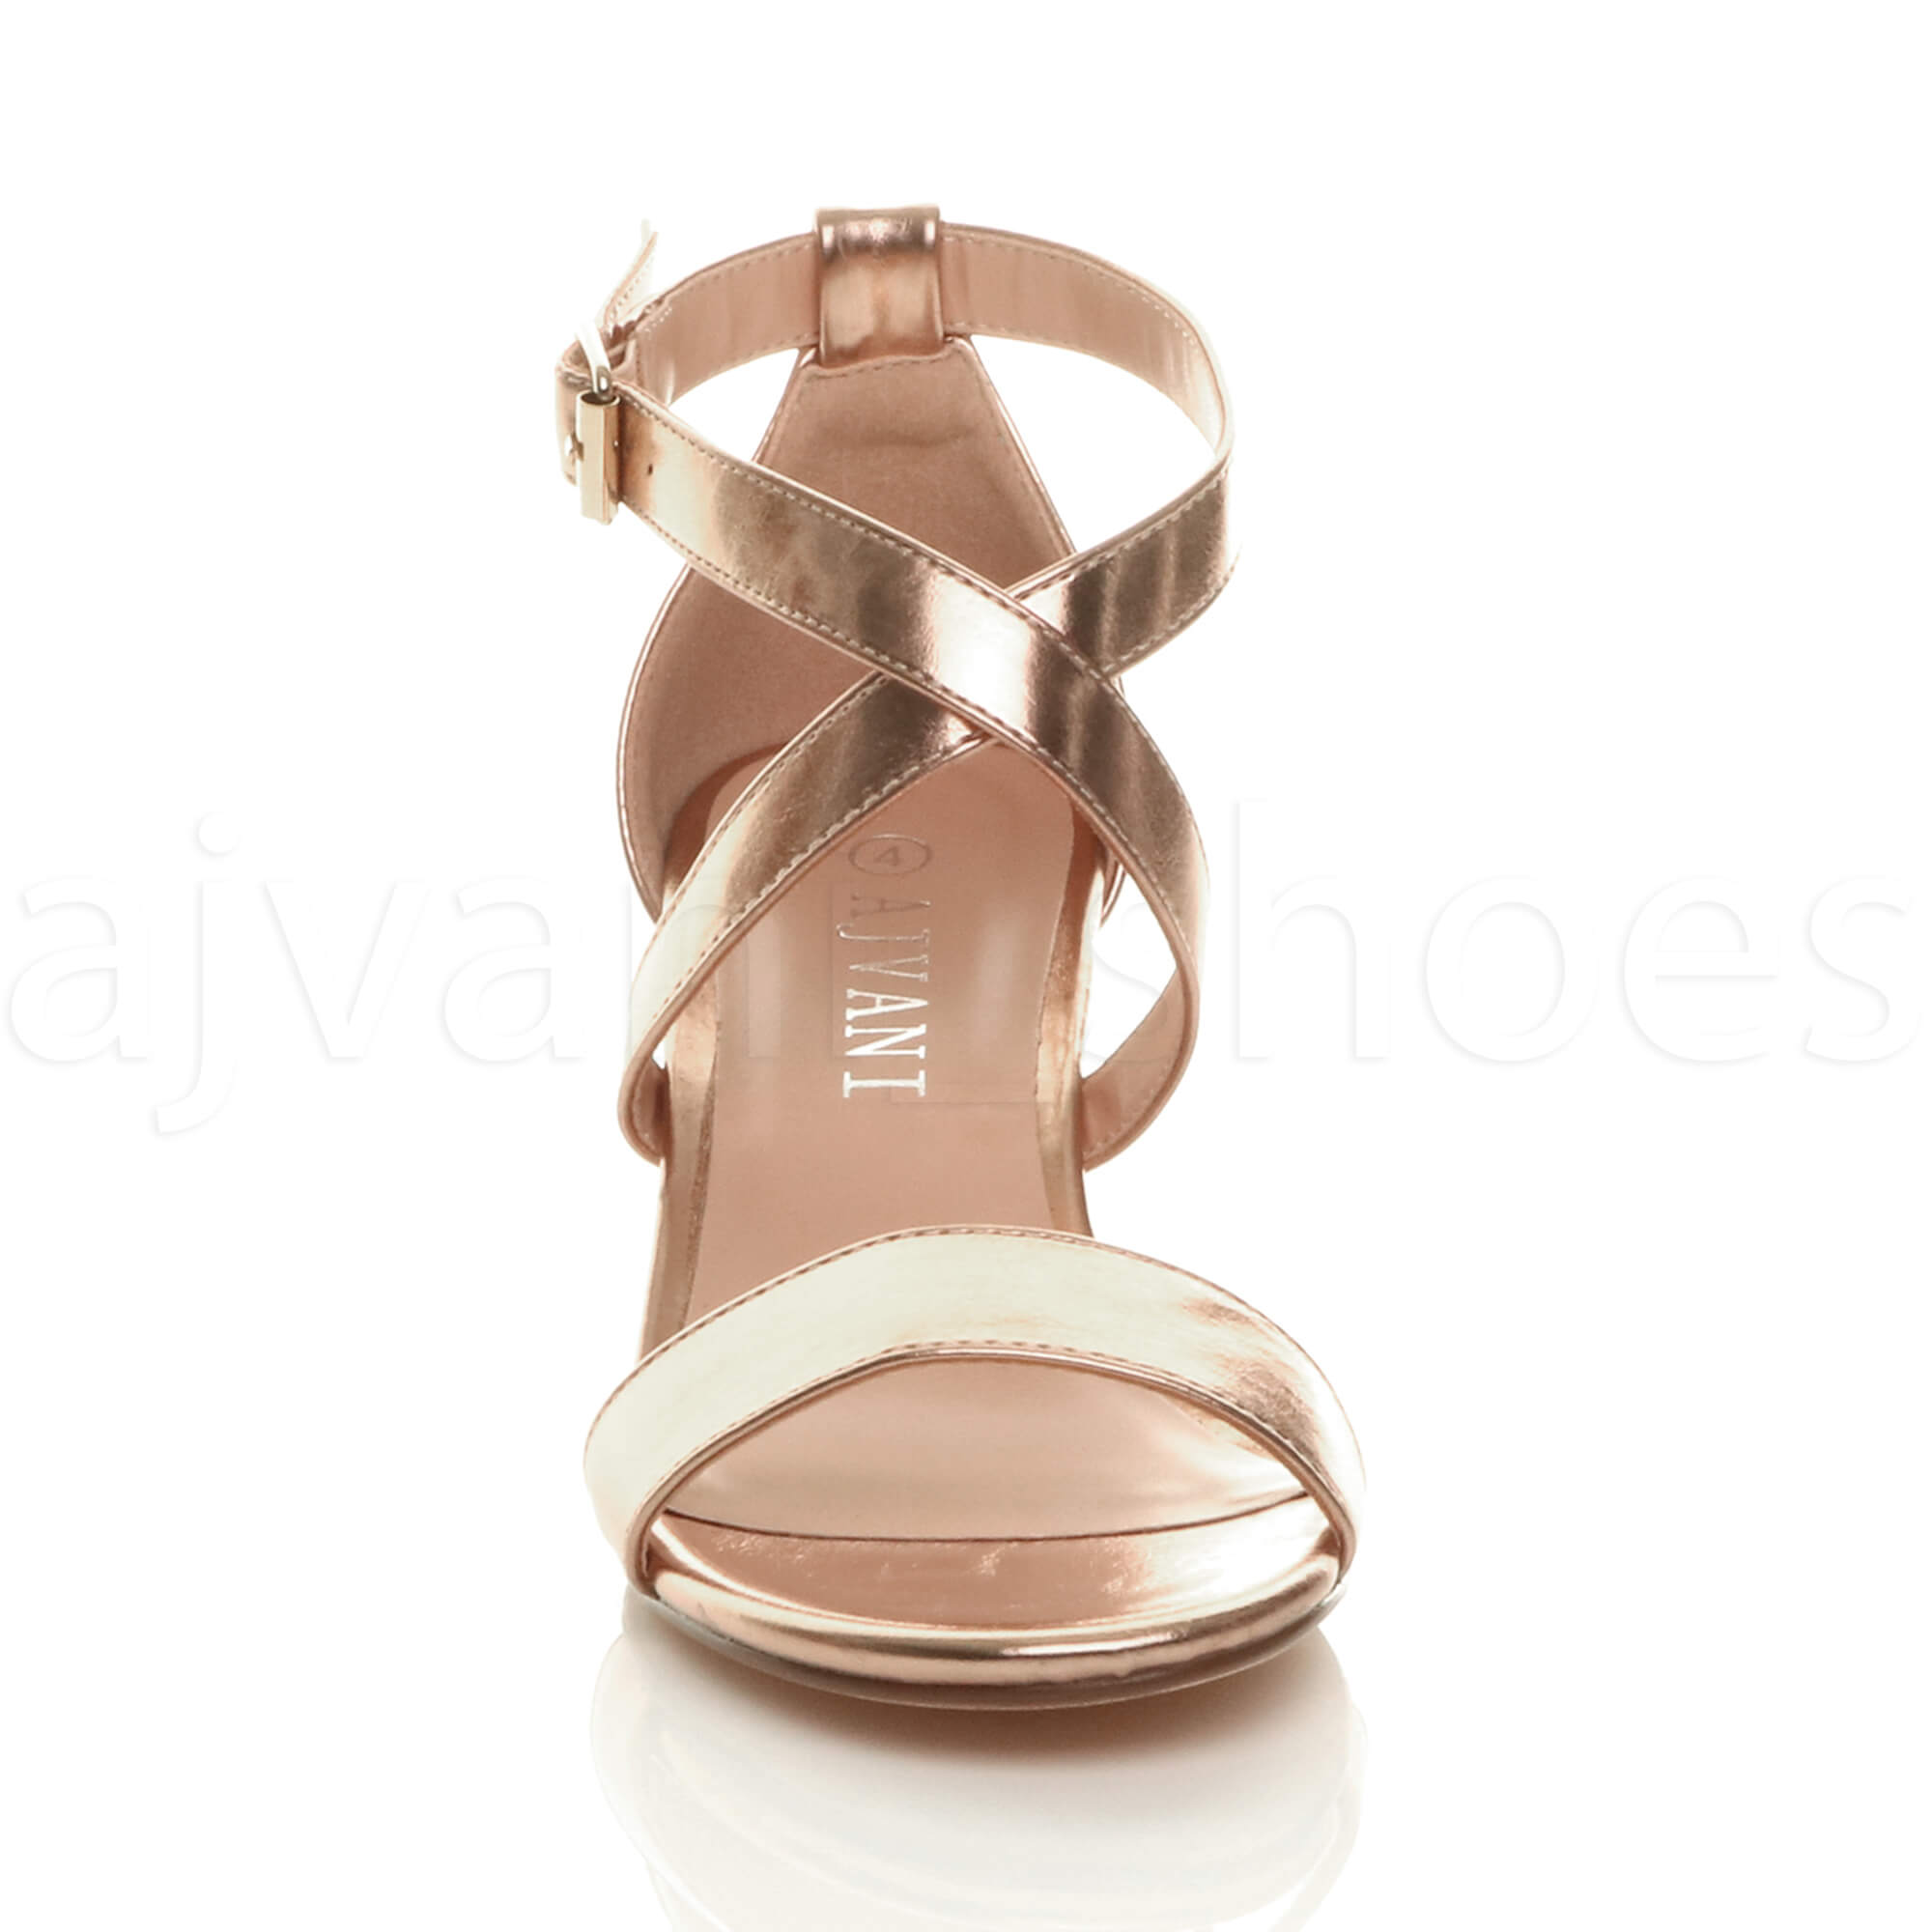 WOMENS-LADIES-MID-LOW-BLOCK-HEEL-CROSS-STRAPS-PARTY-STRAPPY-SANDALS-SHOES-SIZE thumbnail 74